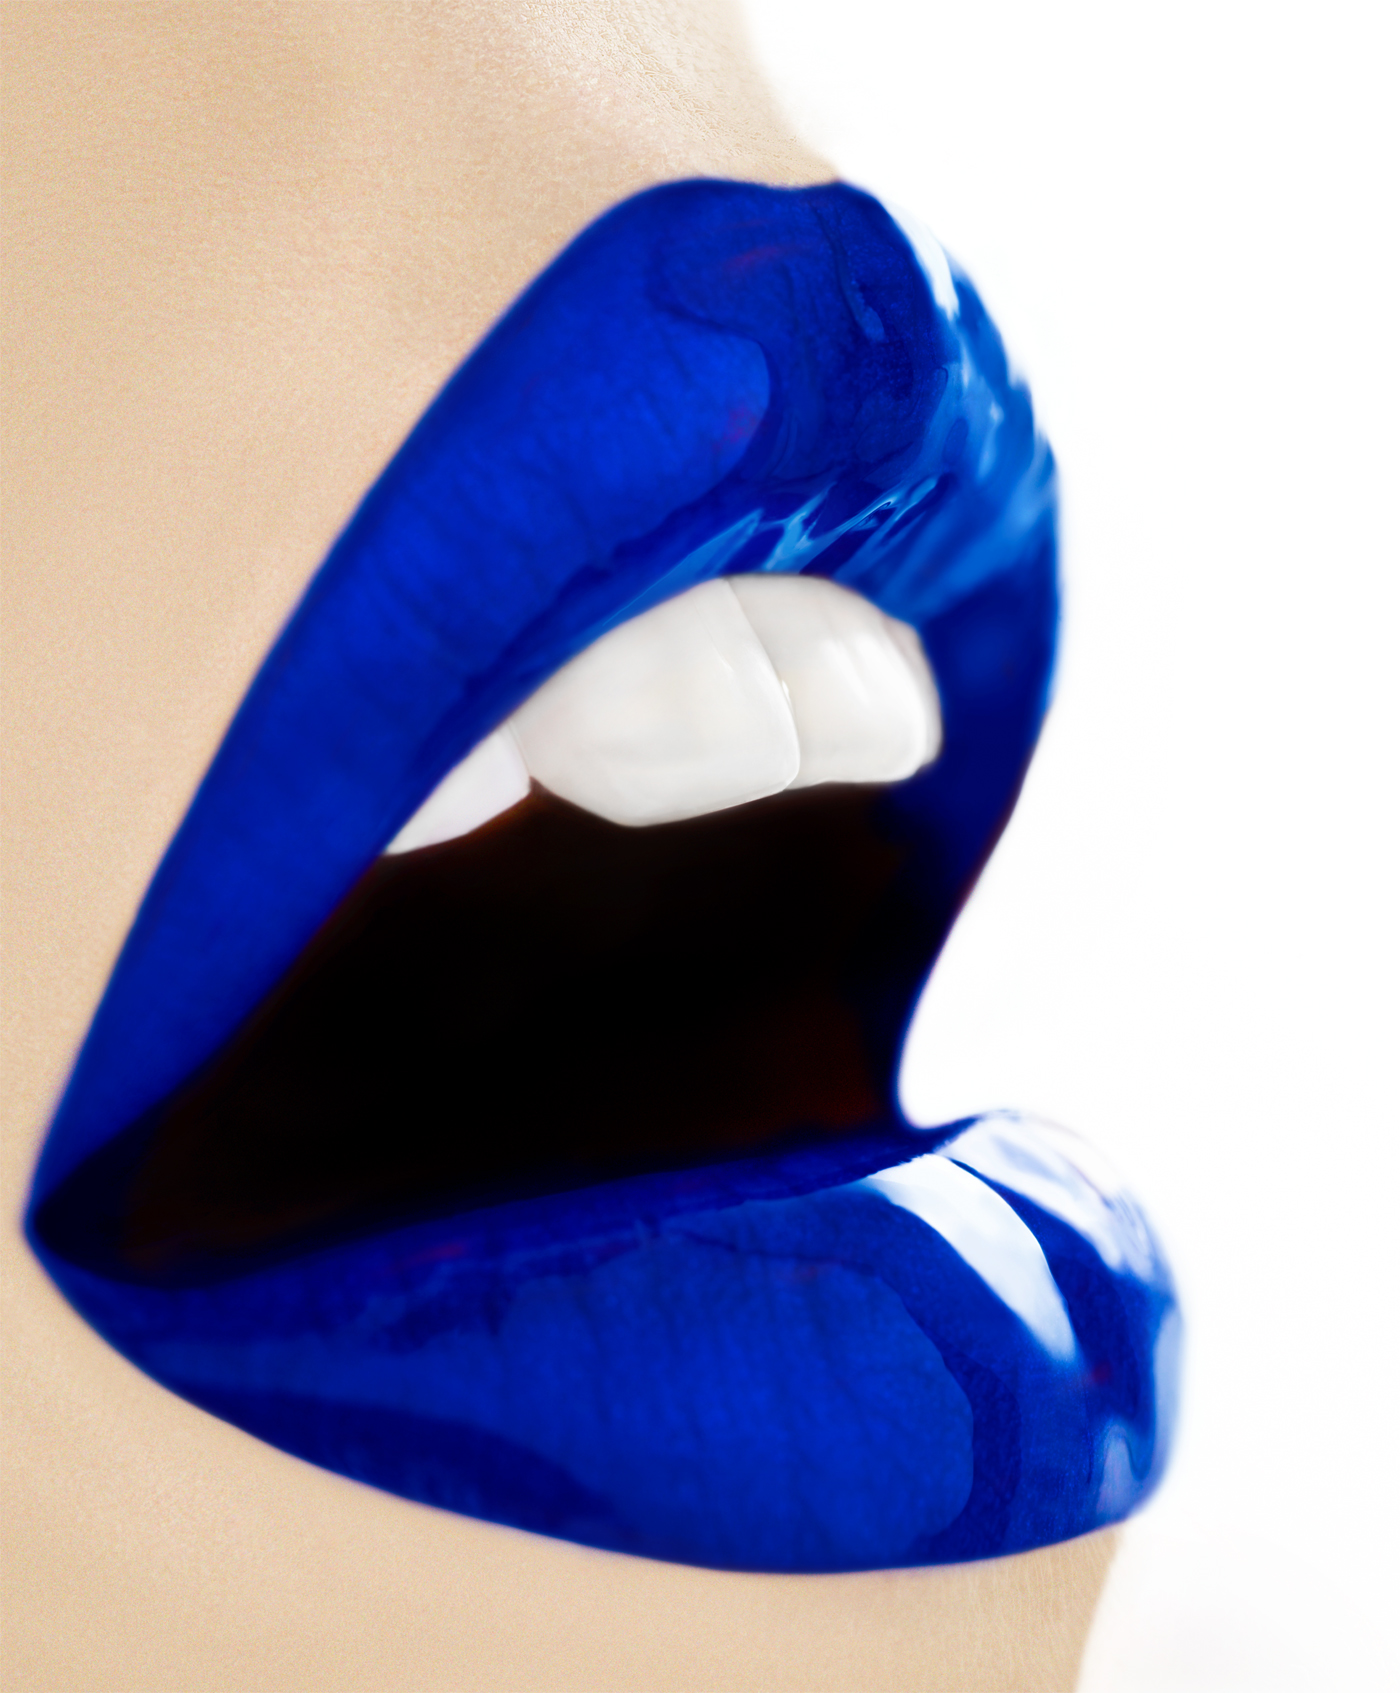 #peterwesth-Blue-Lust-#painting-#photography#fineart#popart-#peterwesth-Peter Westh-@peterwesth-lips-lipstic-teeth-beauty